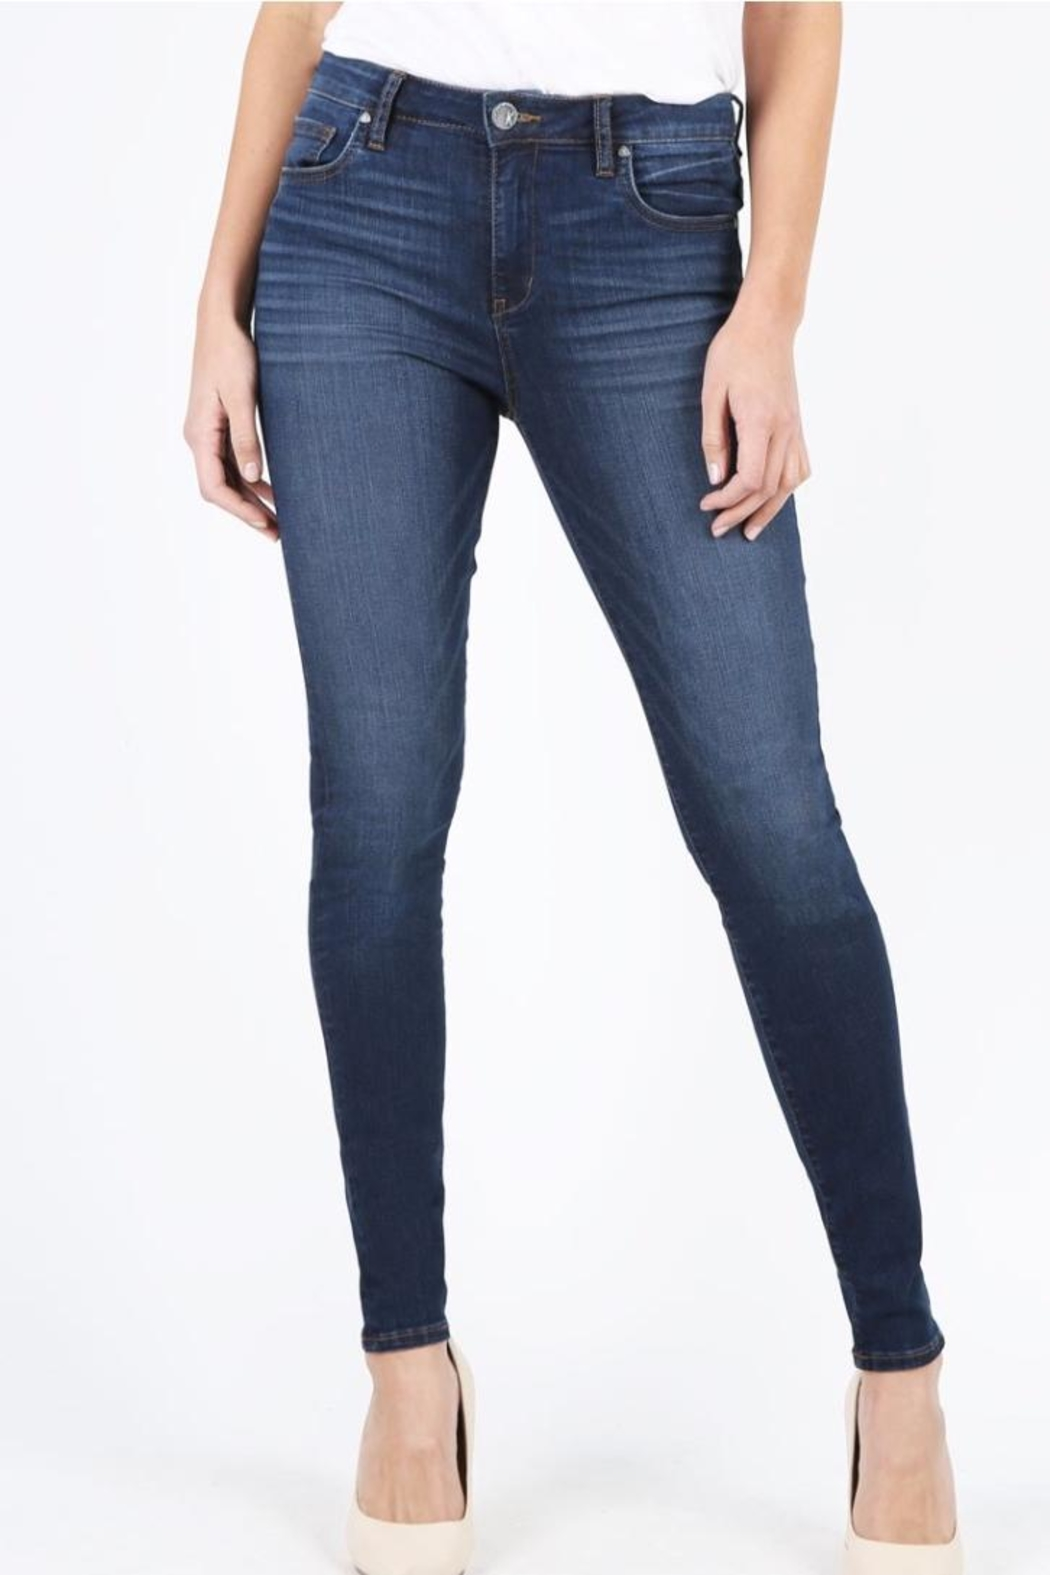 Kut from the Kloth Slim-Fit Skinny Jeans - Main Image